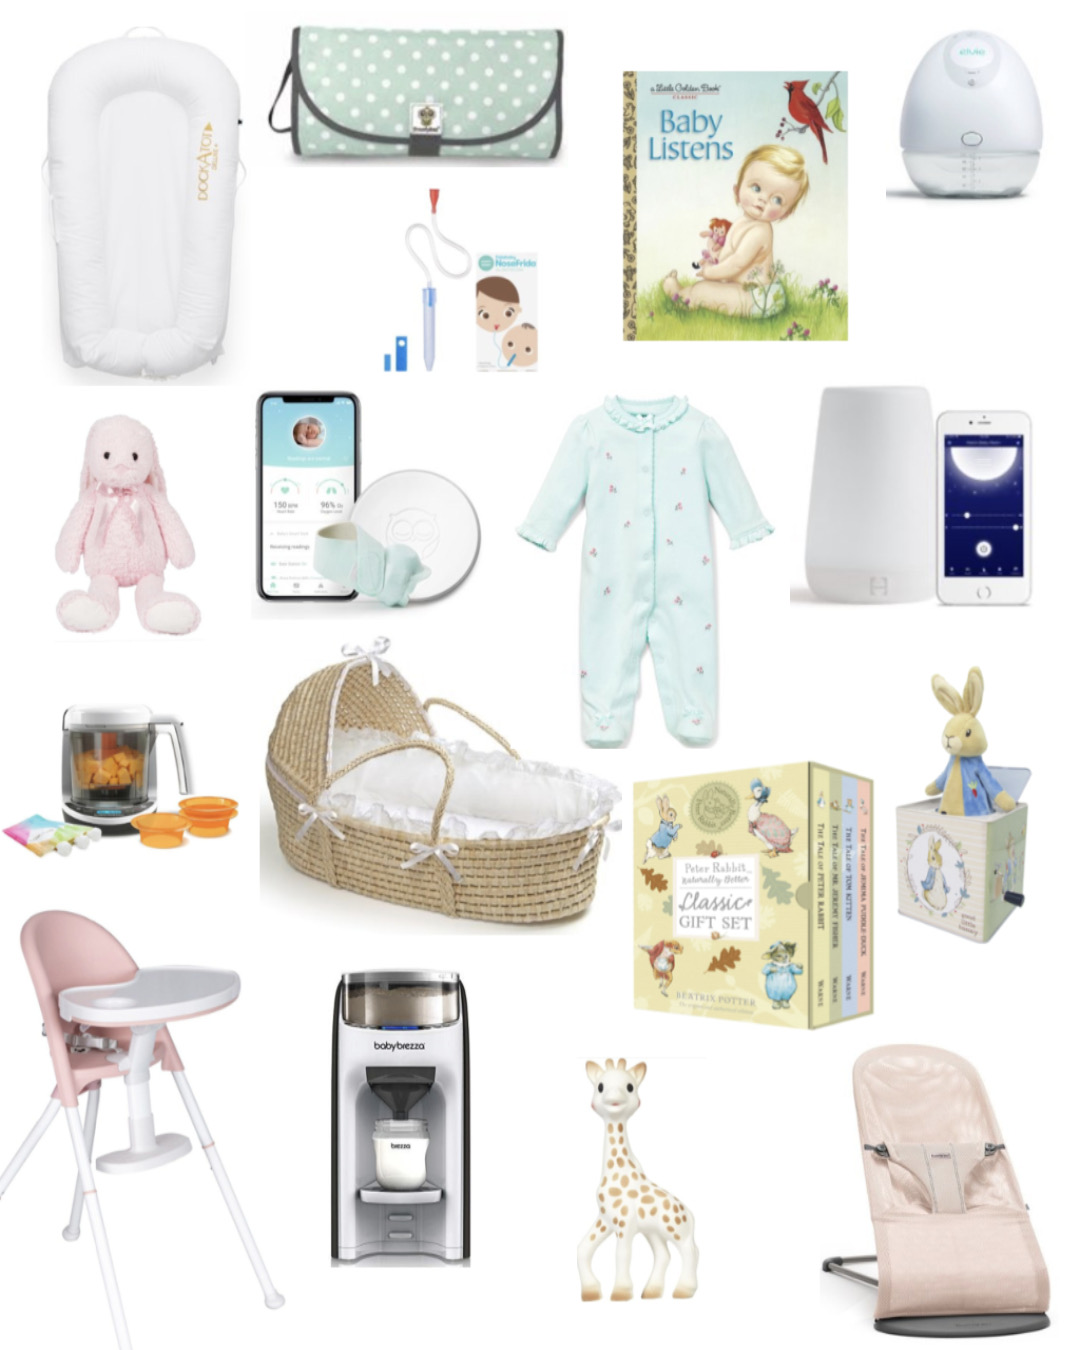 New Year, New Baby Items at Walmart!